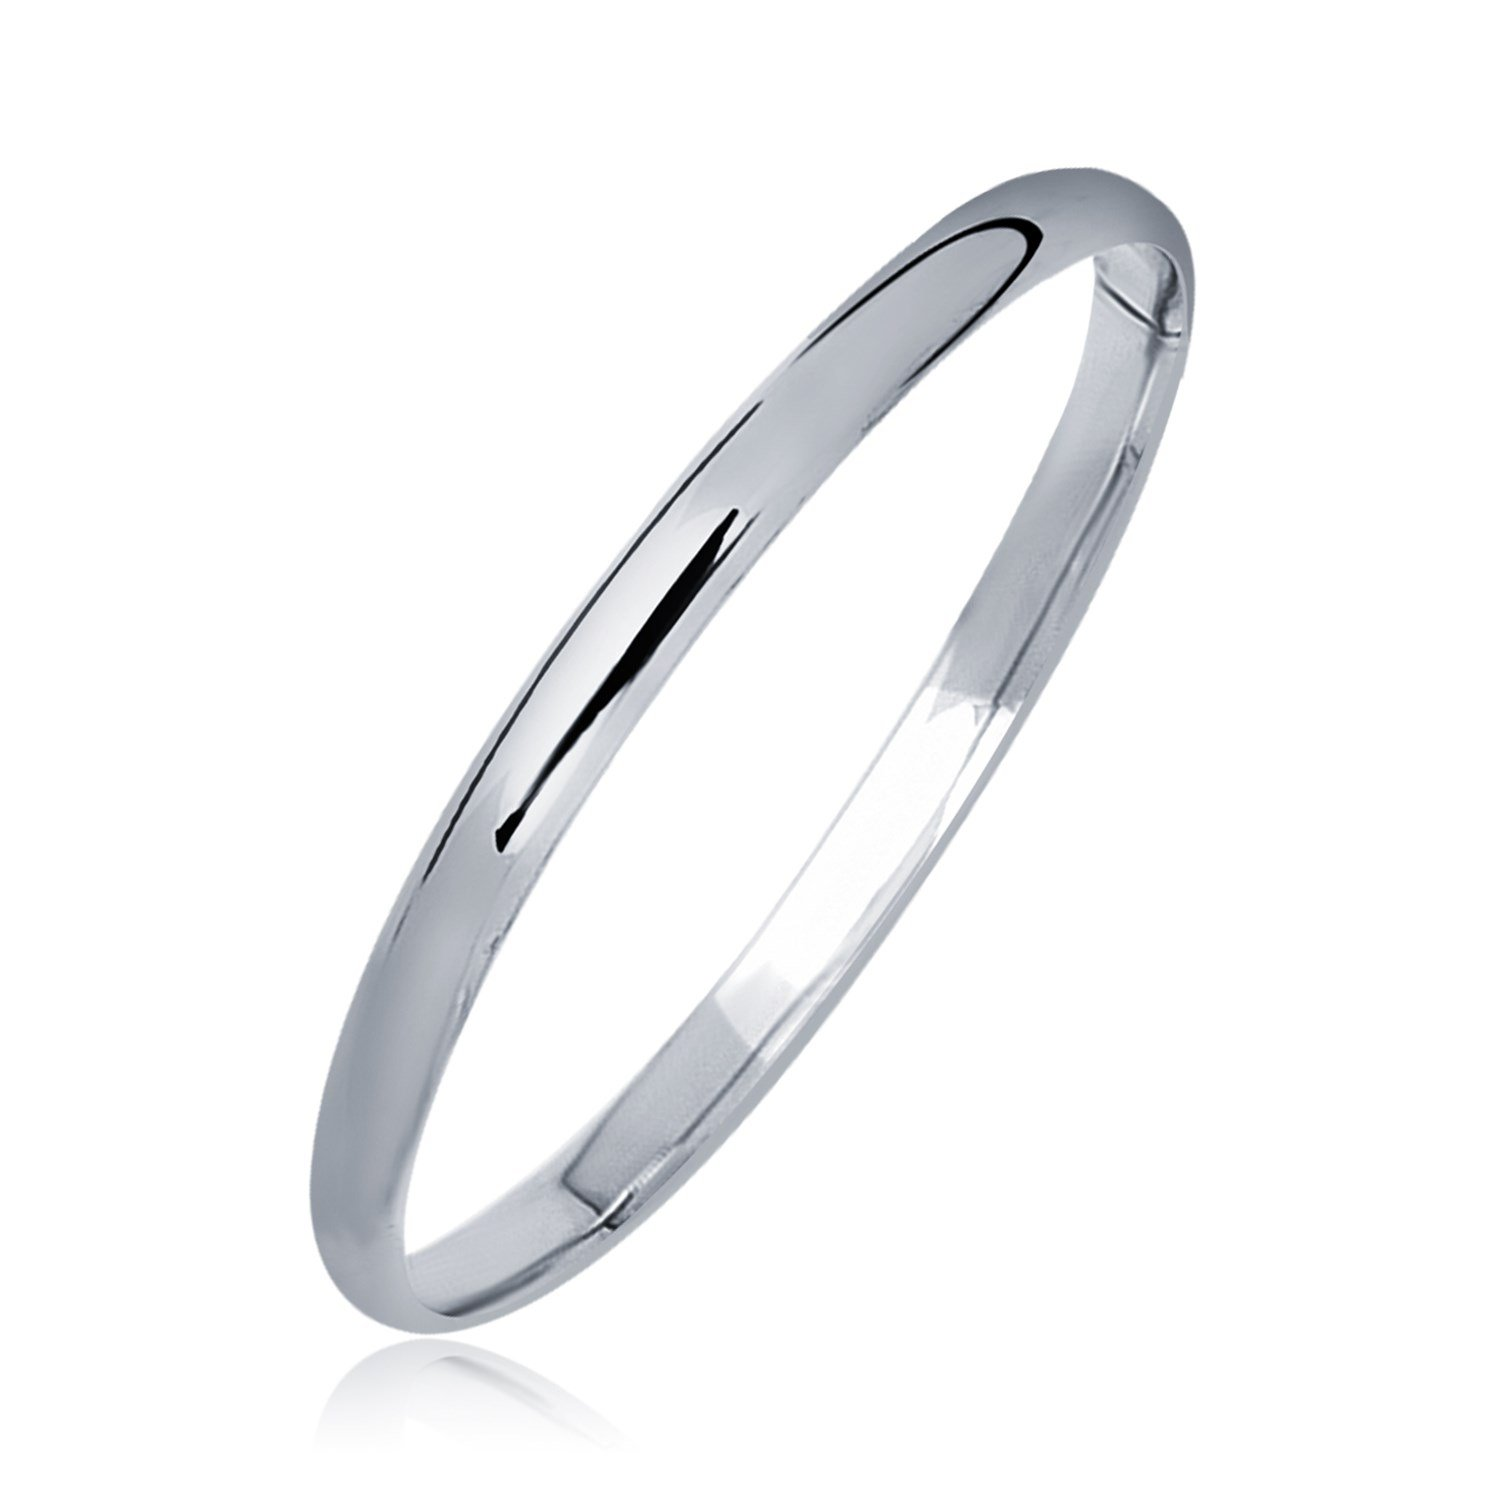 14K White Gold Dome Children's Bangle with a Polished Finish